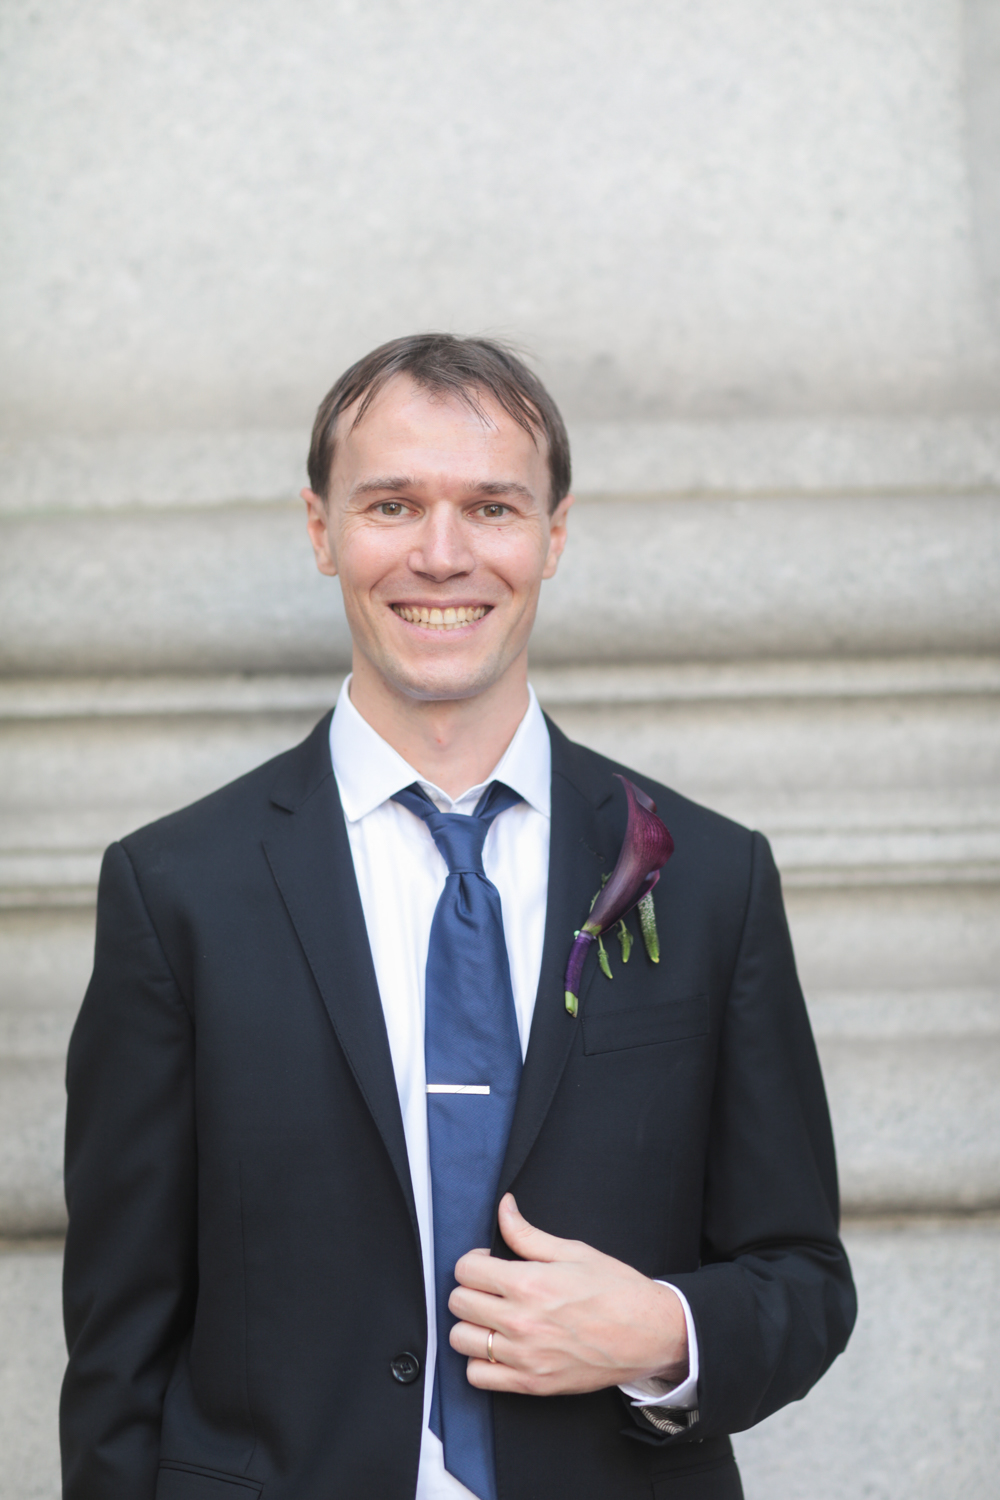 Portrait of the groom wearing a dark suit, navy blue tie, and purple boutenniere.